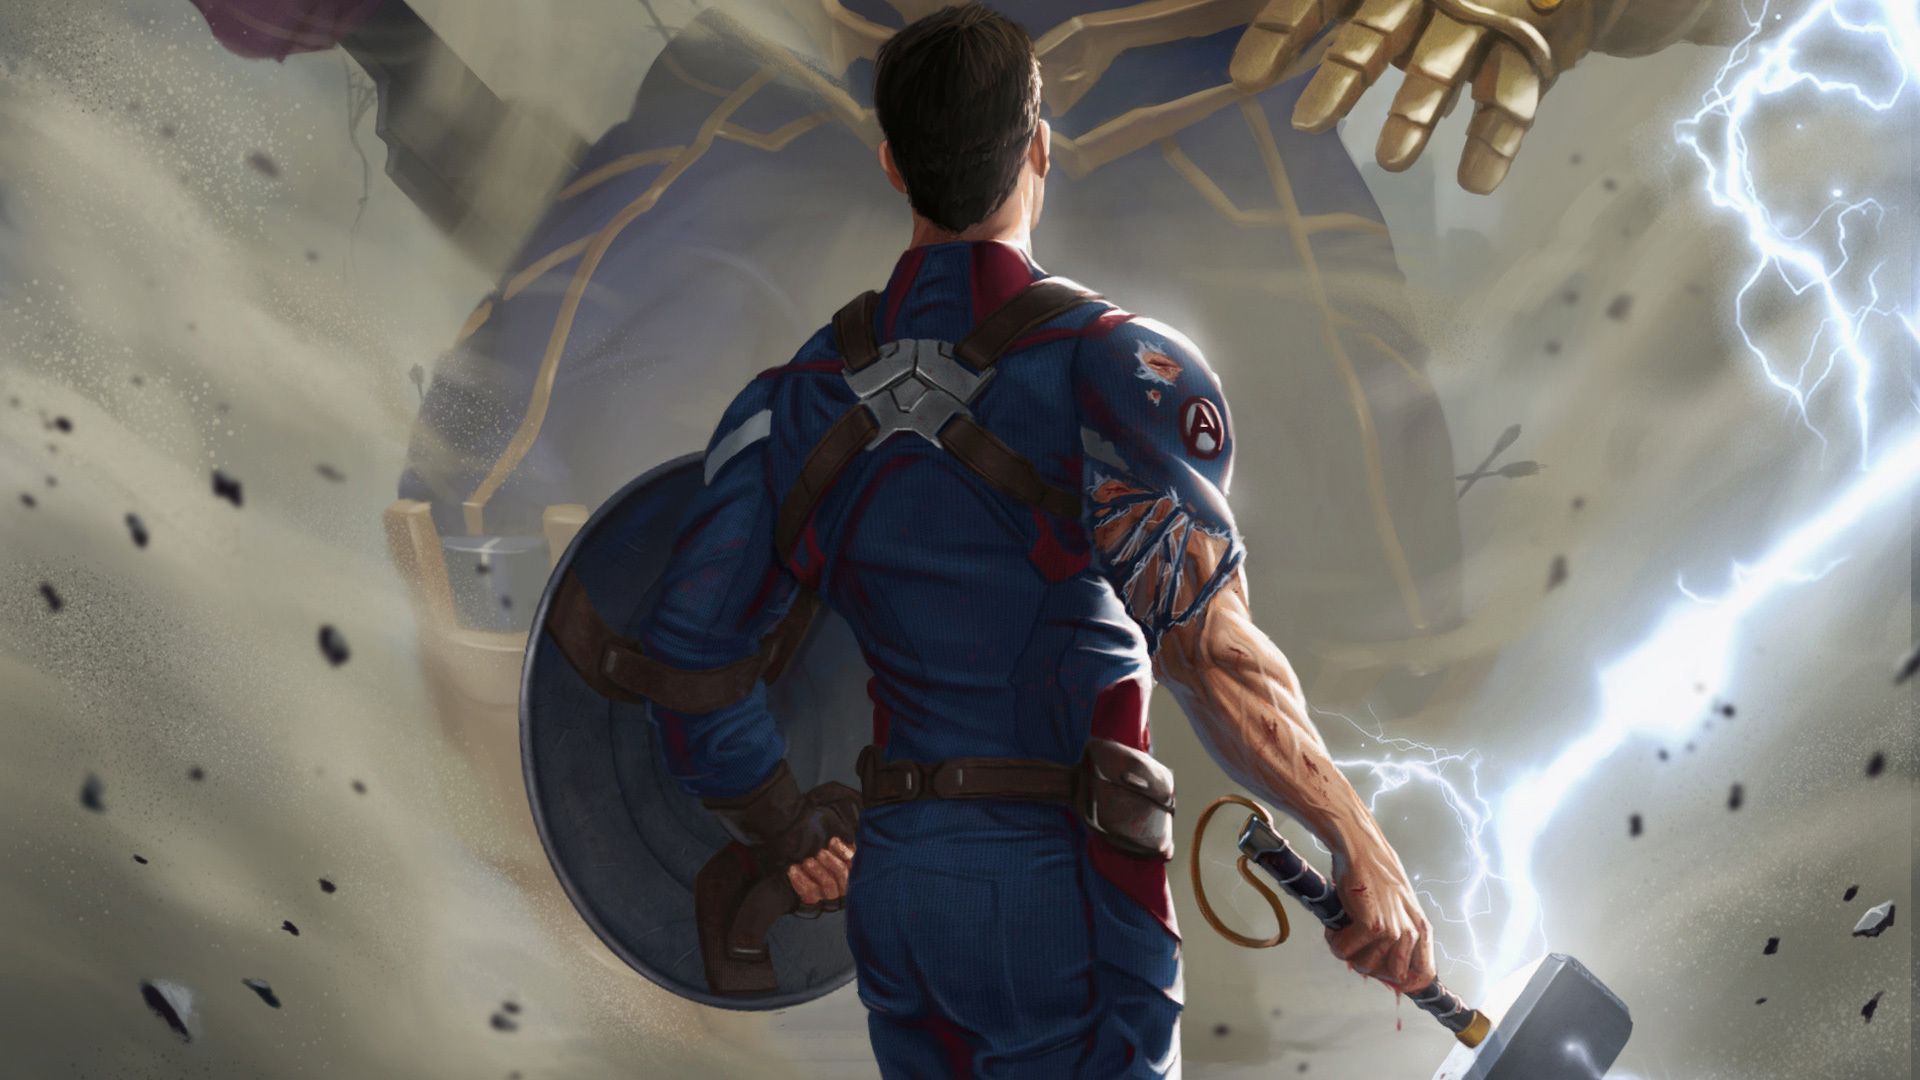 1920x1080 Captain America With Thor Hammer Laptop Full Hd 1080p Hd